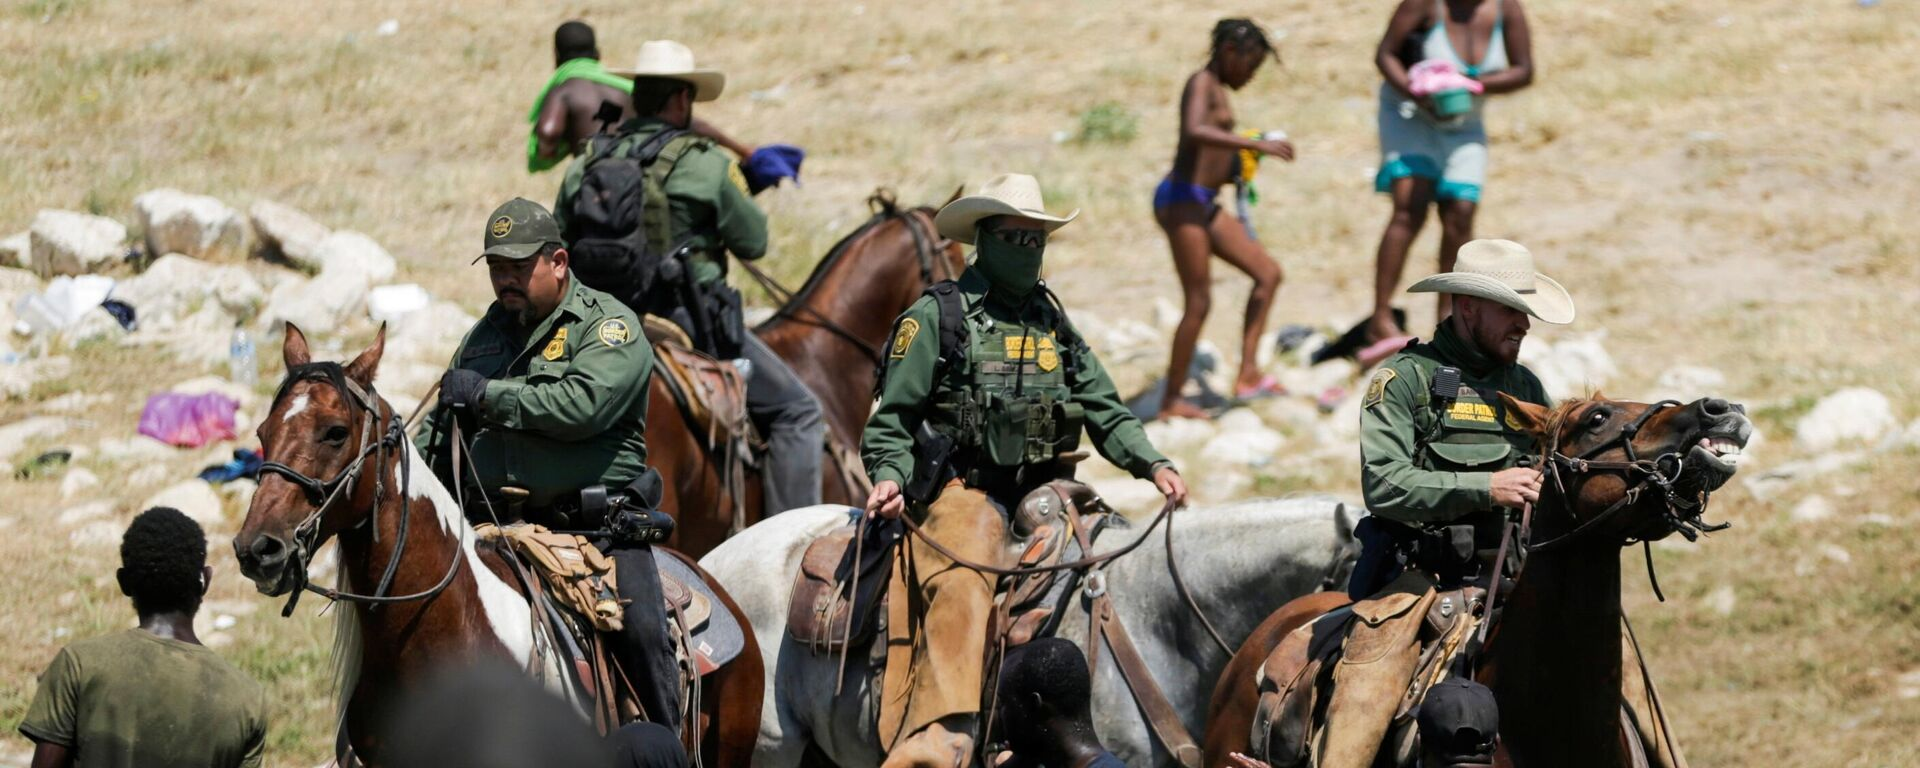 U.S. law enforcement officers on horseback block the way to migrants reaching the shores of the Rio Grande as they try to return to the United States after buying food in Mexico, as seen from Ciudad Acuna, Mexico September 19, 2021. Picture taken September 19, 2021 - Sputnik International, 1920, 20.09.2021